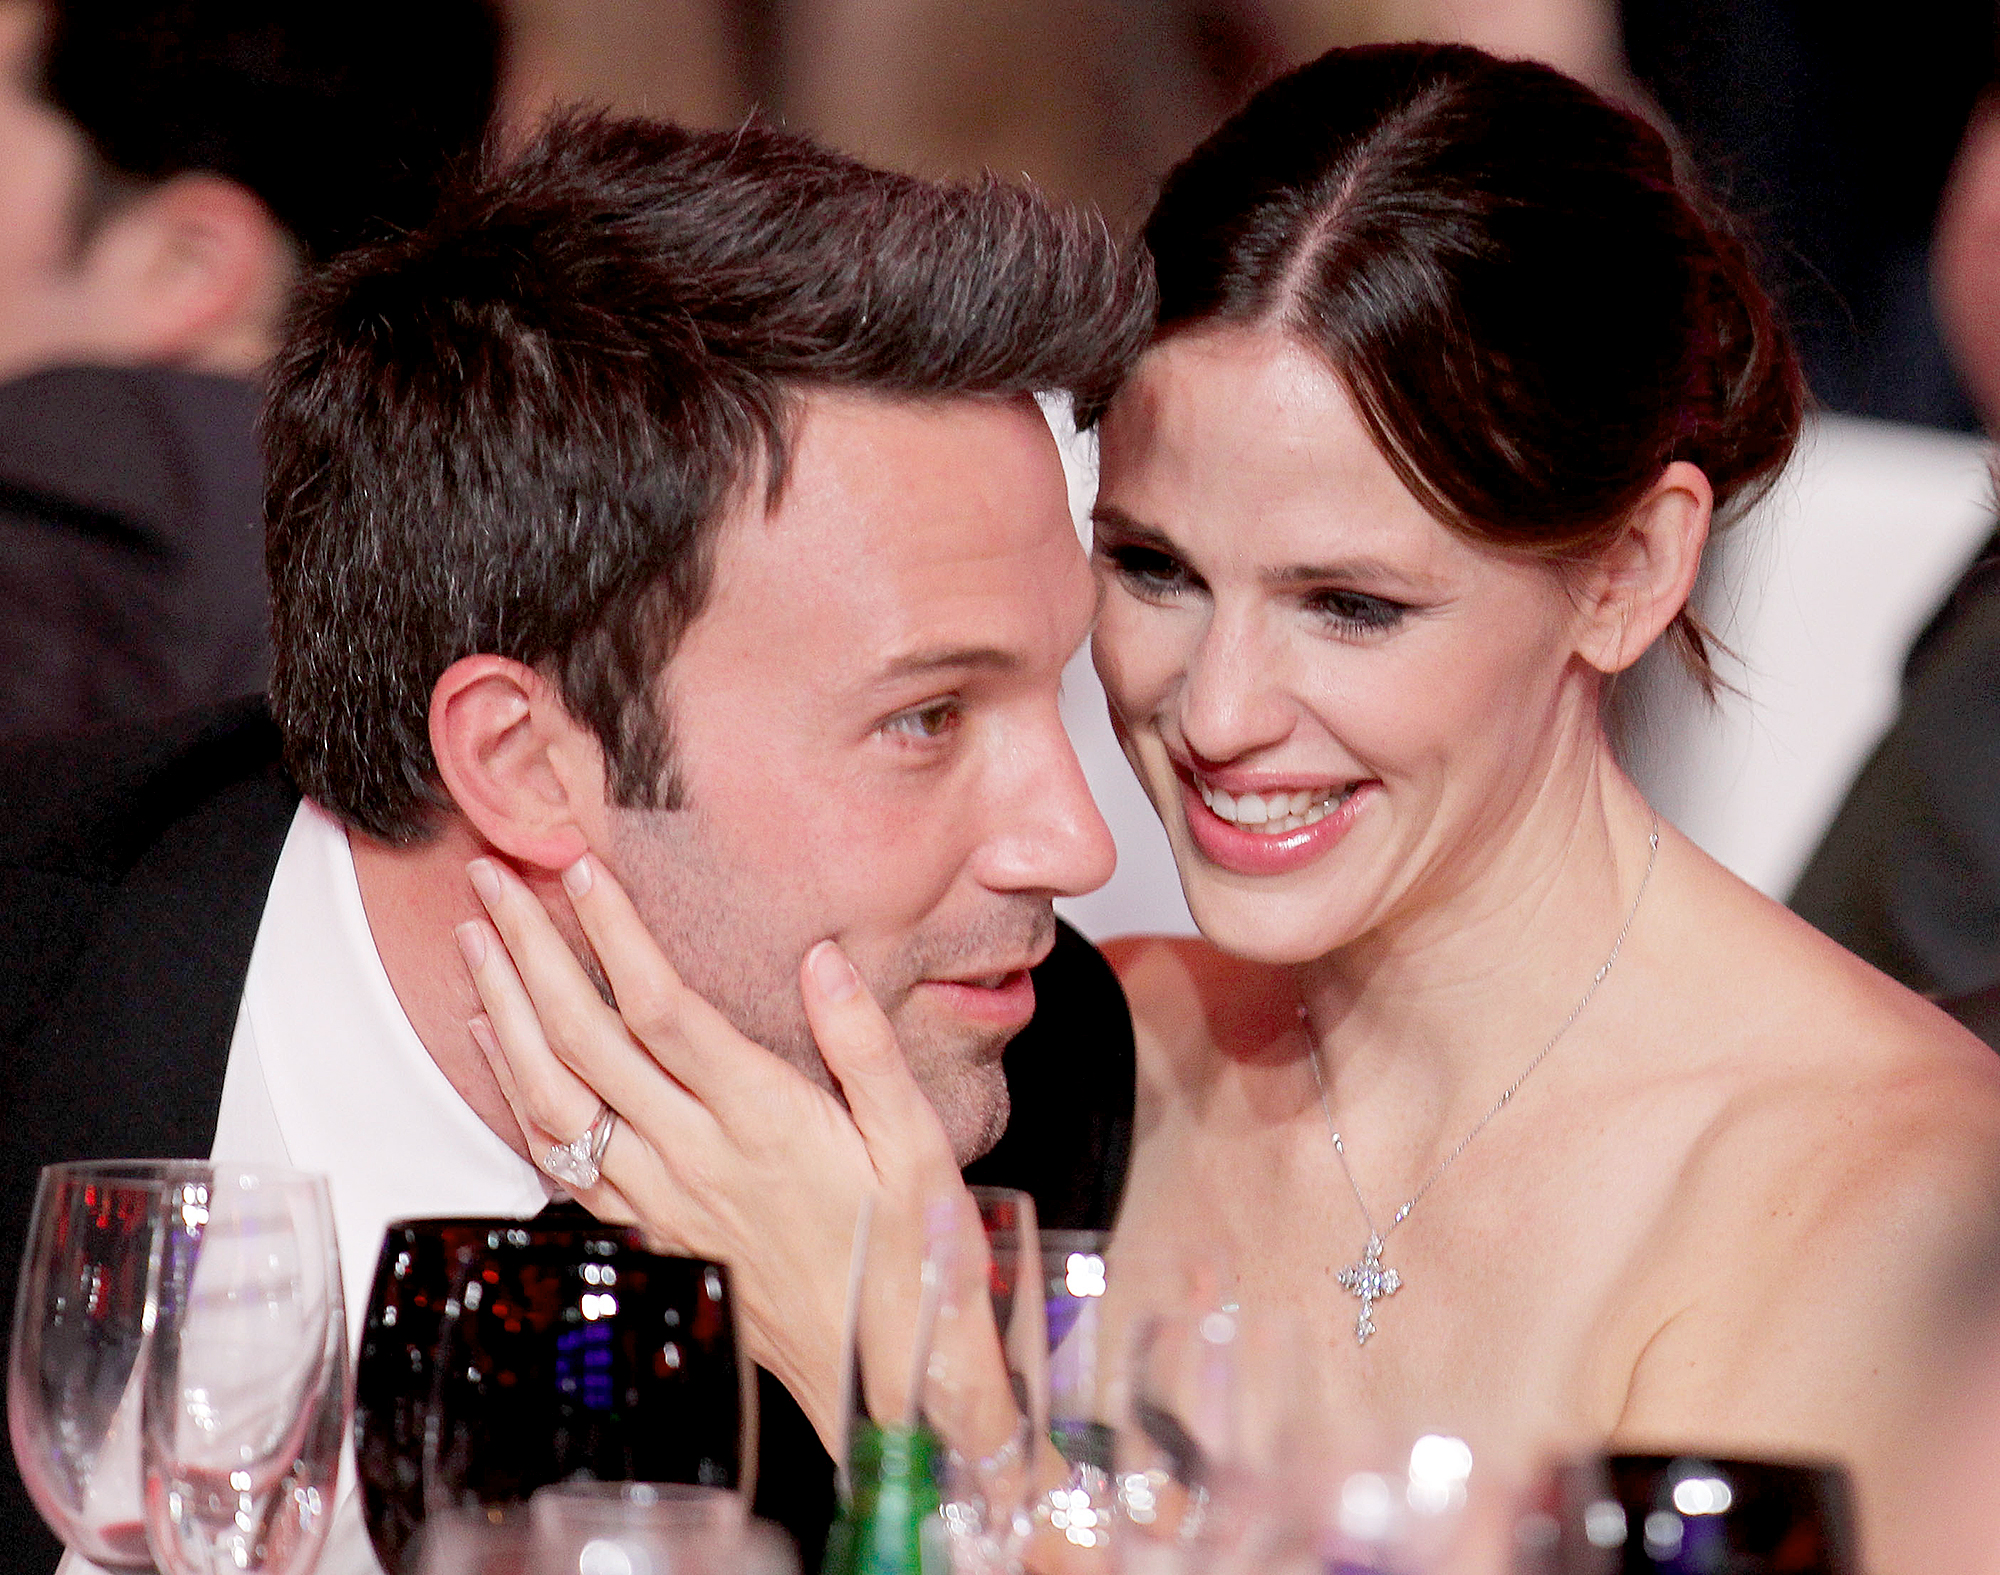 ben-affleck-jennifer-garner - Garner and Affleck worked together on 2001's Pearl Harbor and 2003's Daredevil before they went public with their relationship in October 2004. The Justice League actor proposed in April 2005, and the couple wed in June 2005.